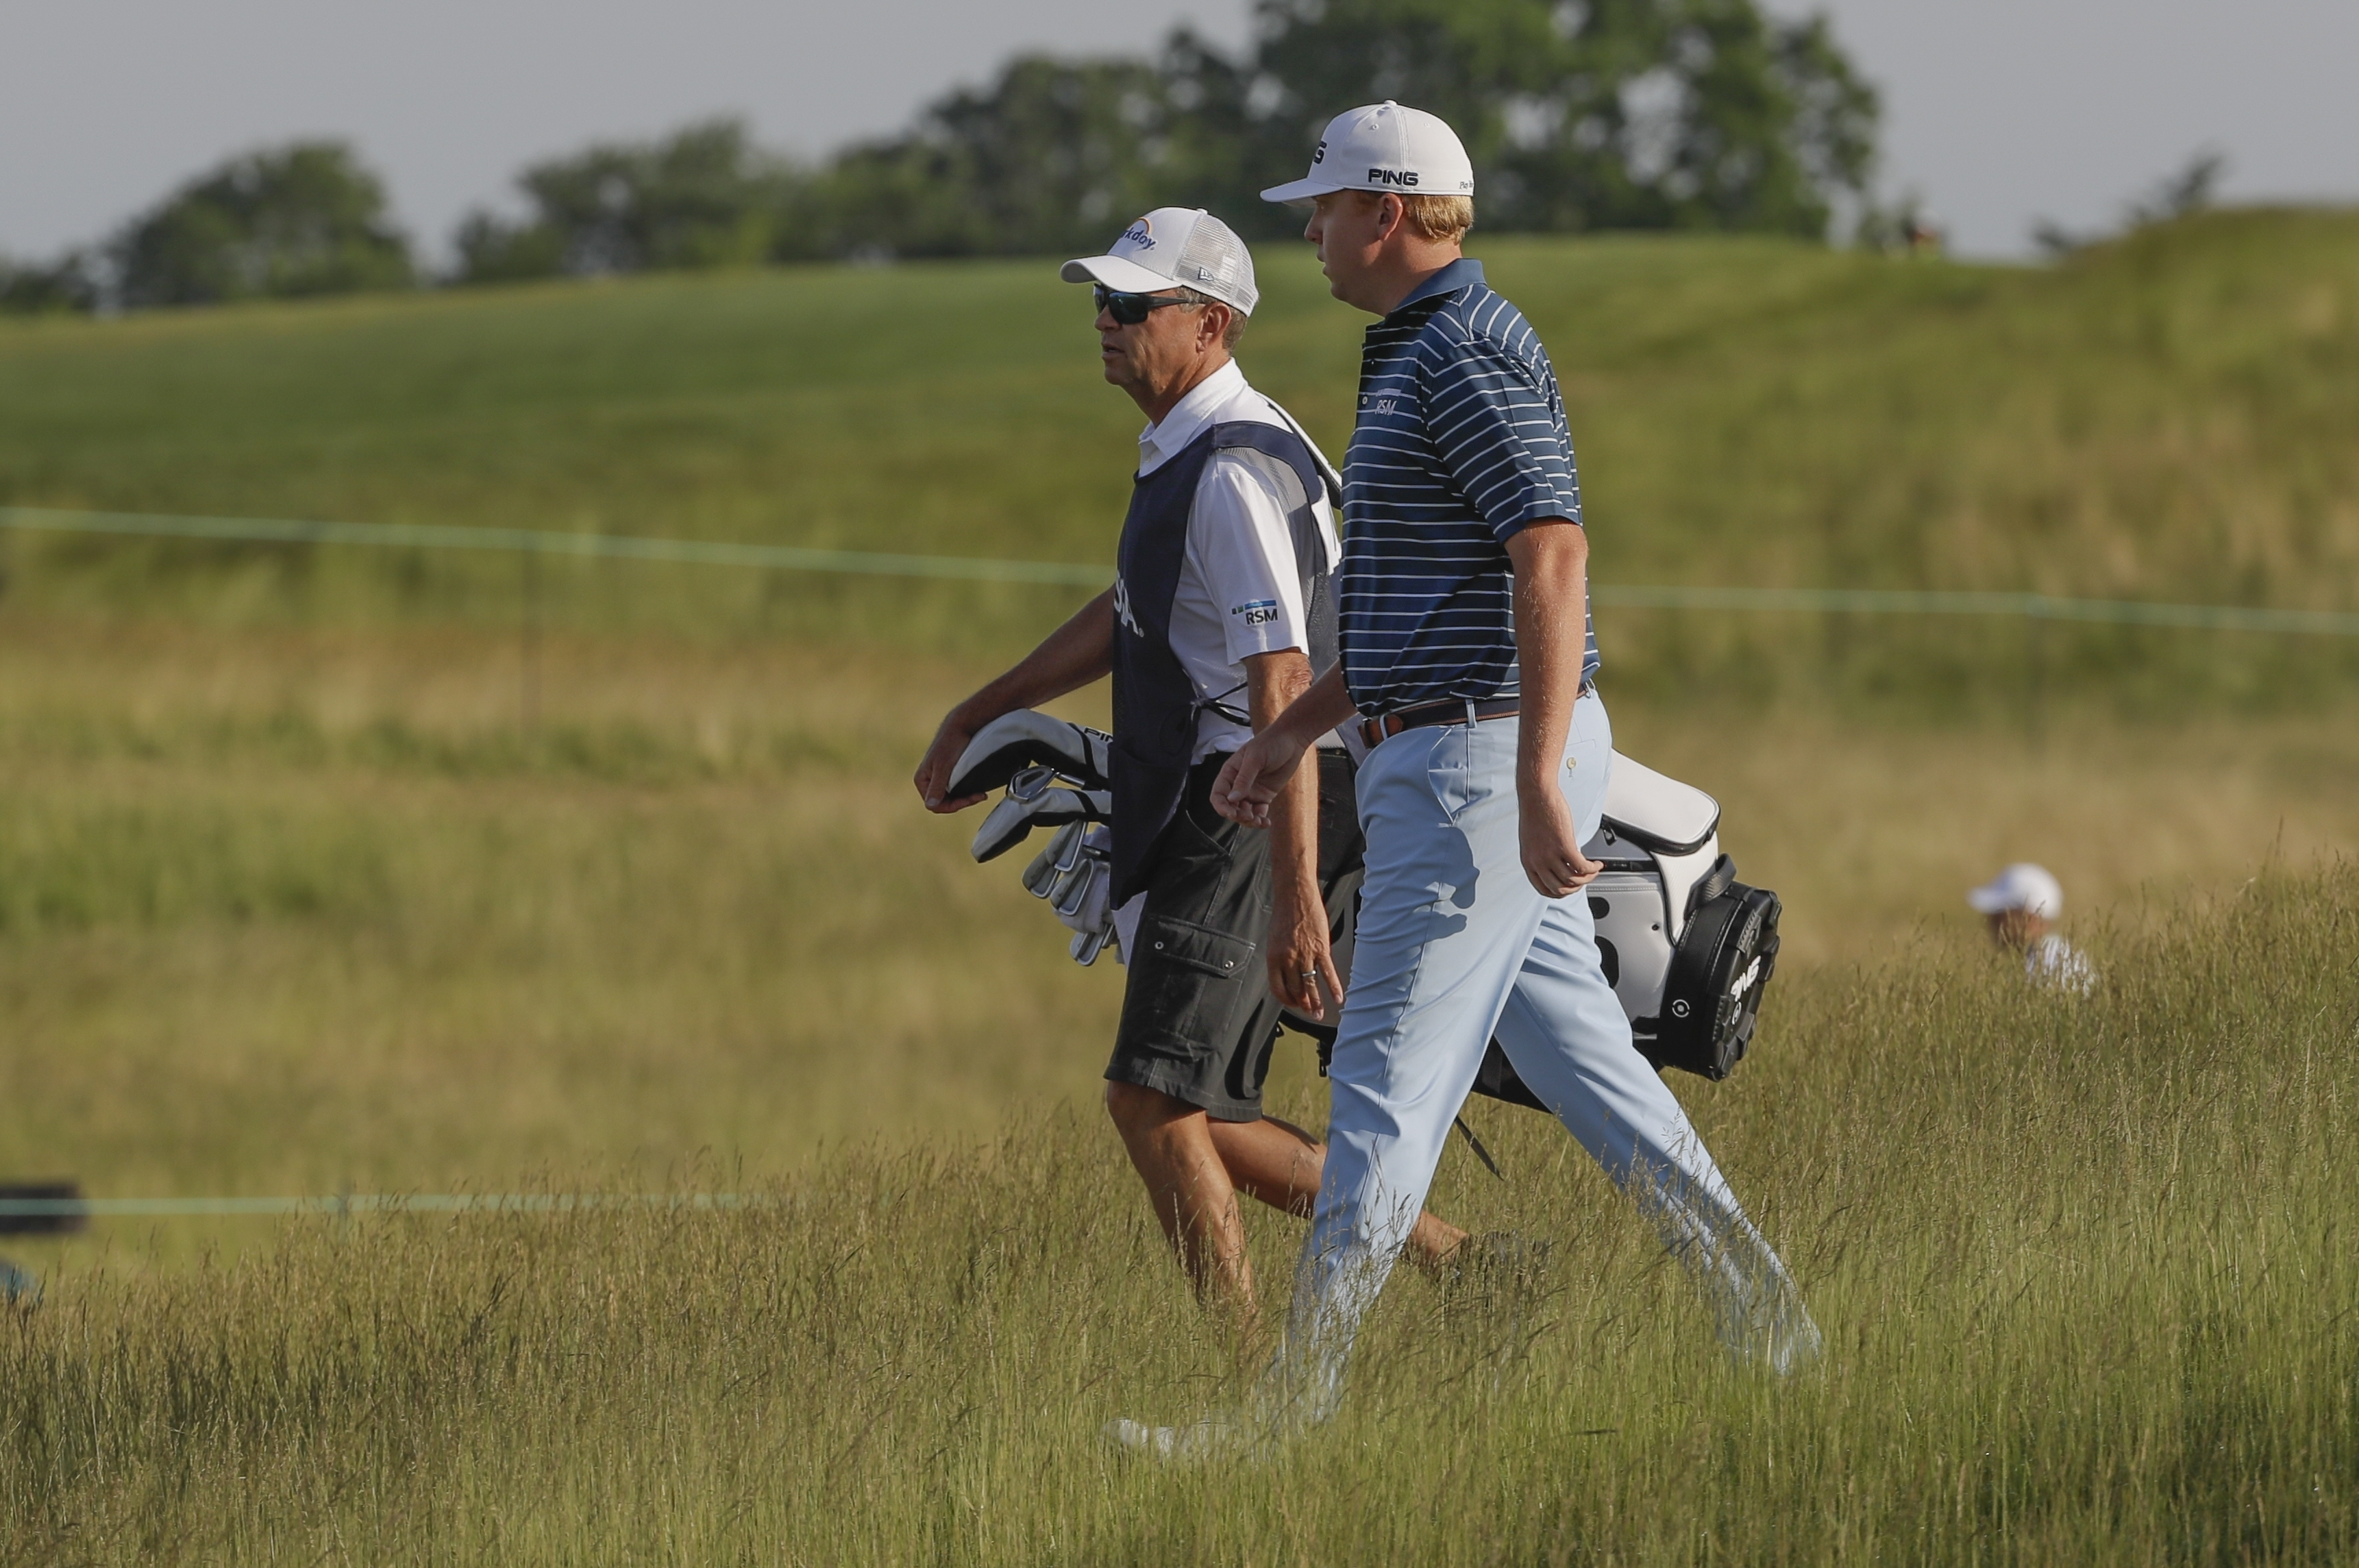 Davis Love IV with his father Davis Love III caddying walk up the first hole during the first round of the U.S. Open golf tournament Thursday, June 15, 2017, at Erin Hills in Erin, Wis. (AP Photo/David J. Phillip)